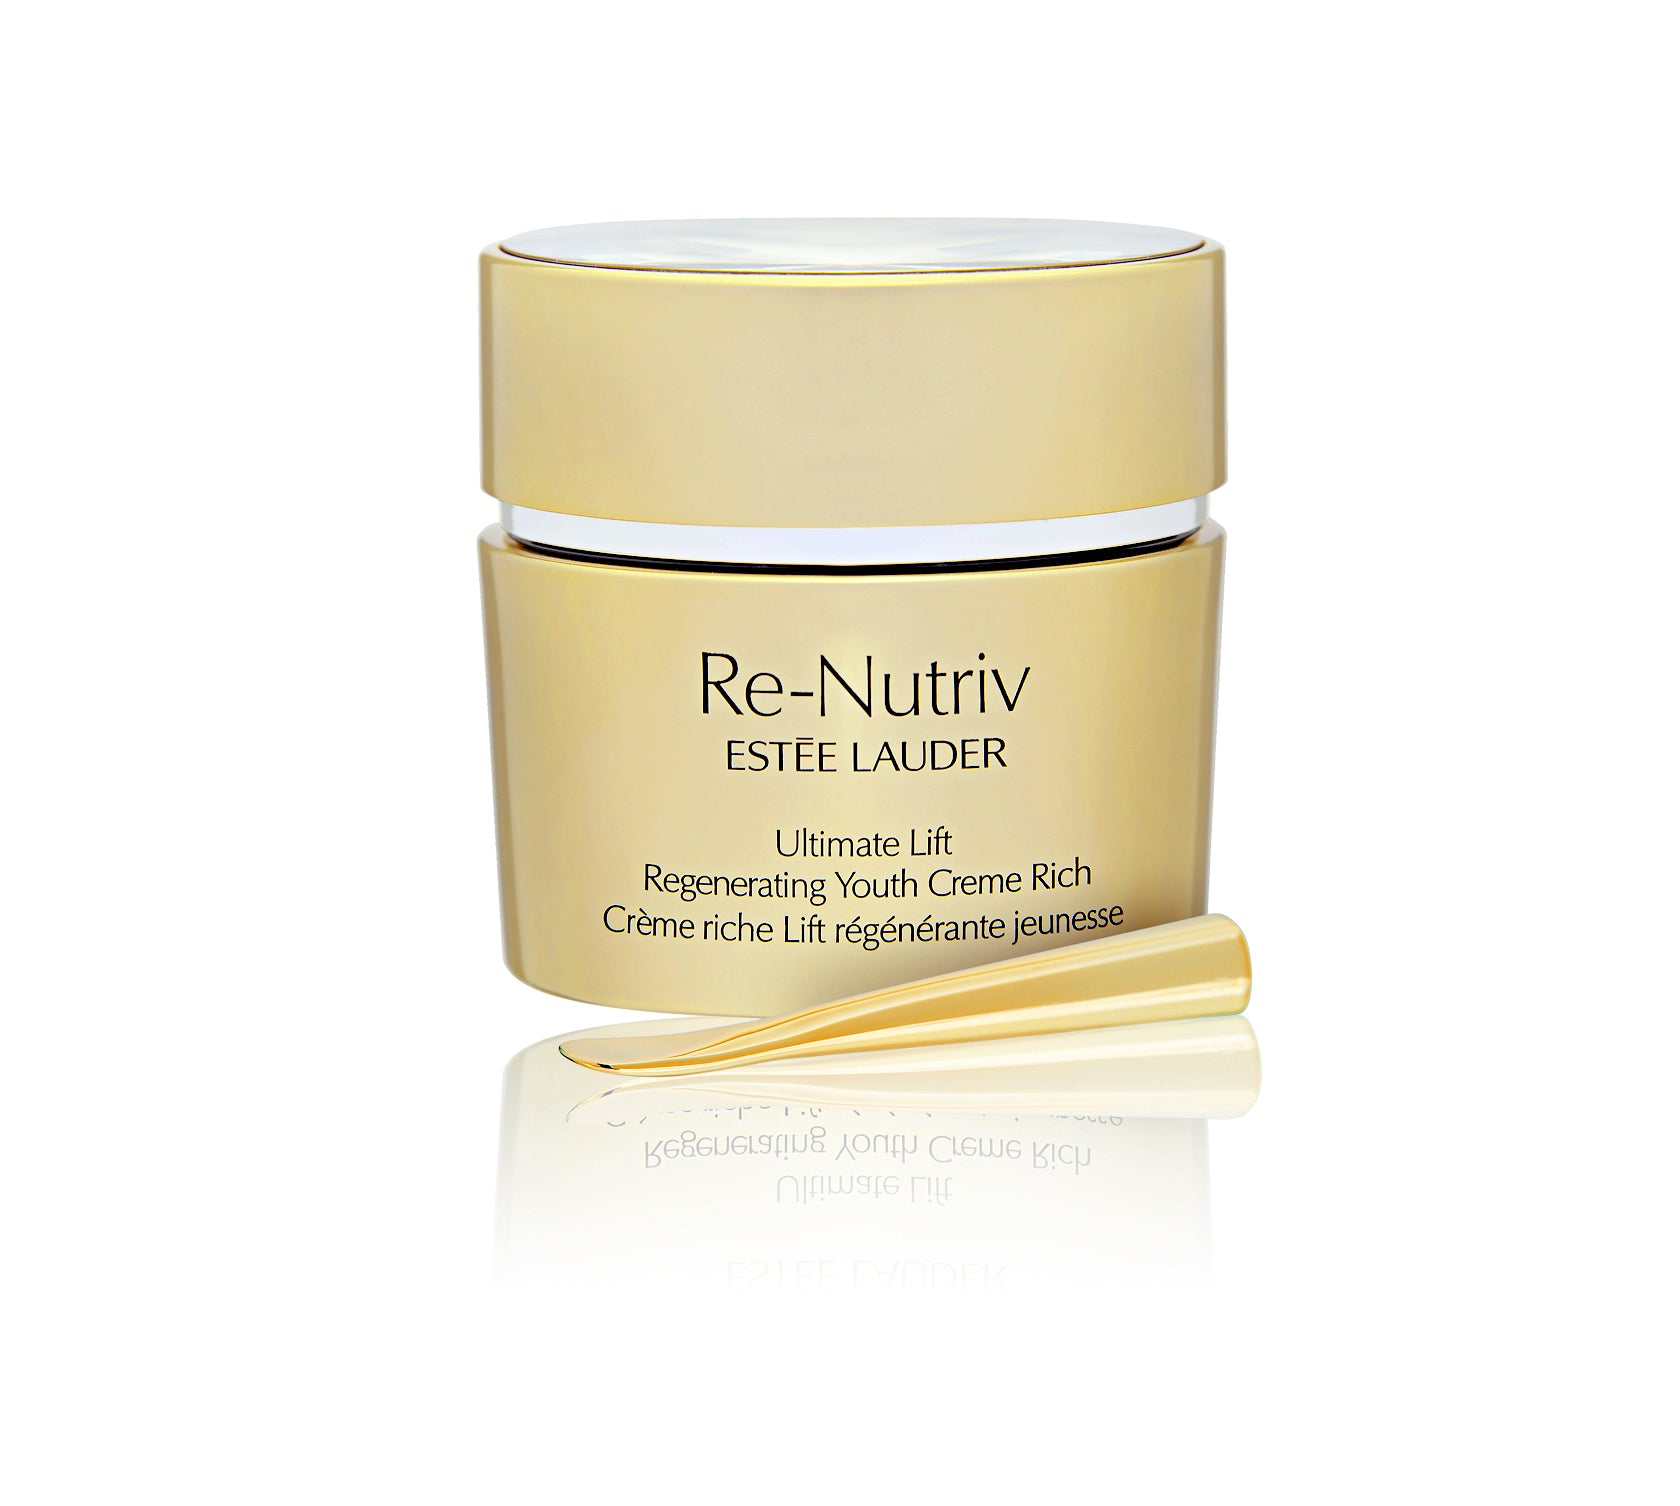 re-nutriv-ultimate-lift-regenerating-youth-creme-rich